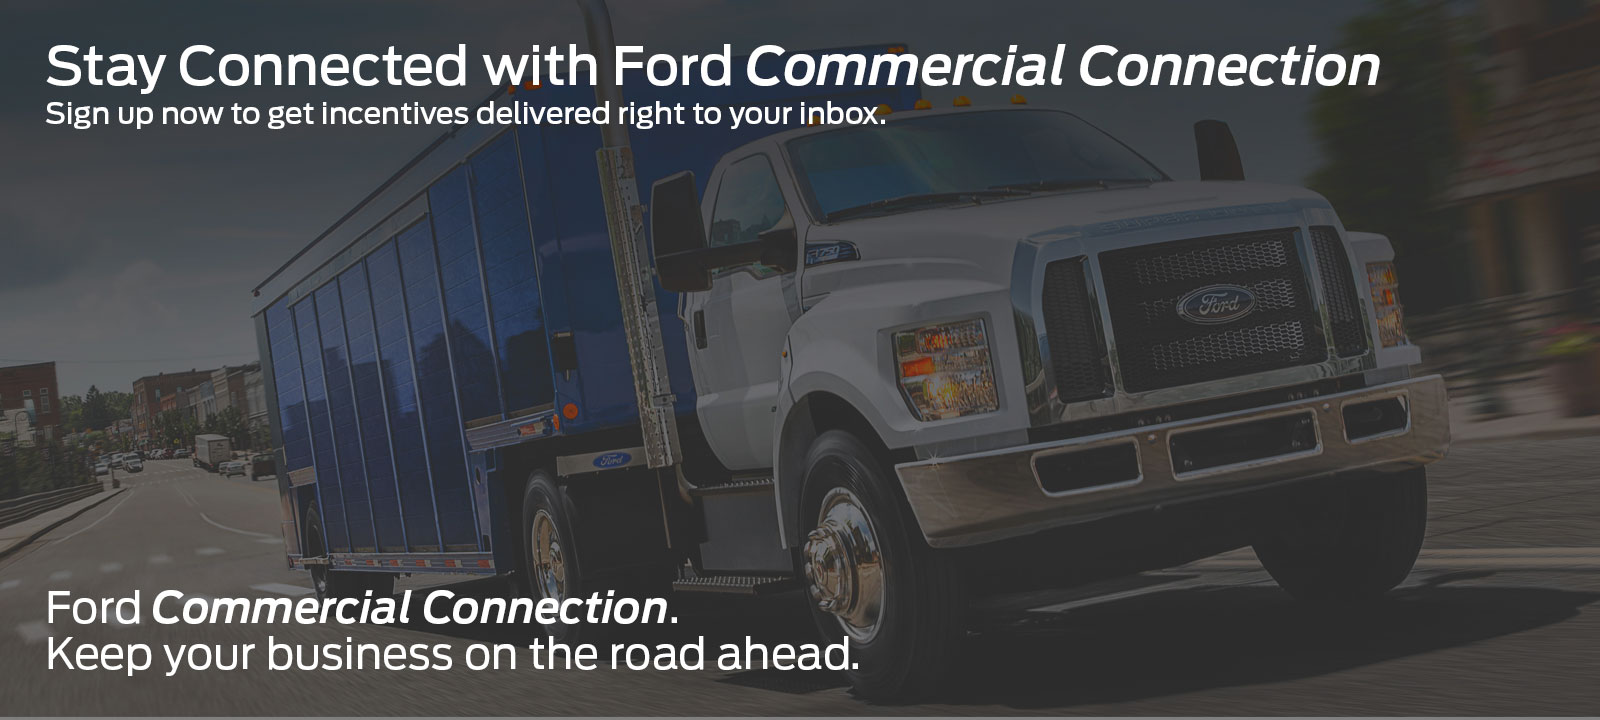 Stay Connected with Ford Commercial Connection